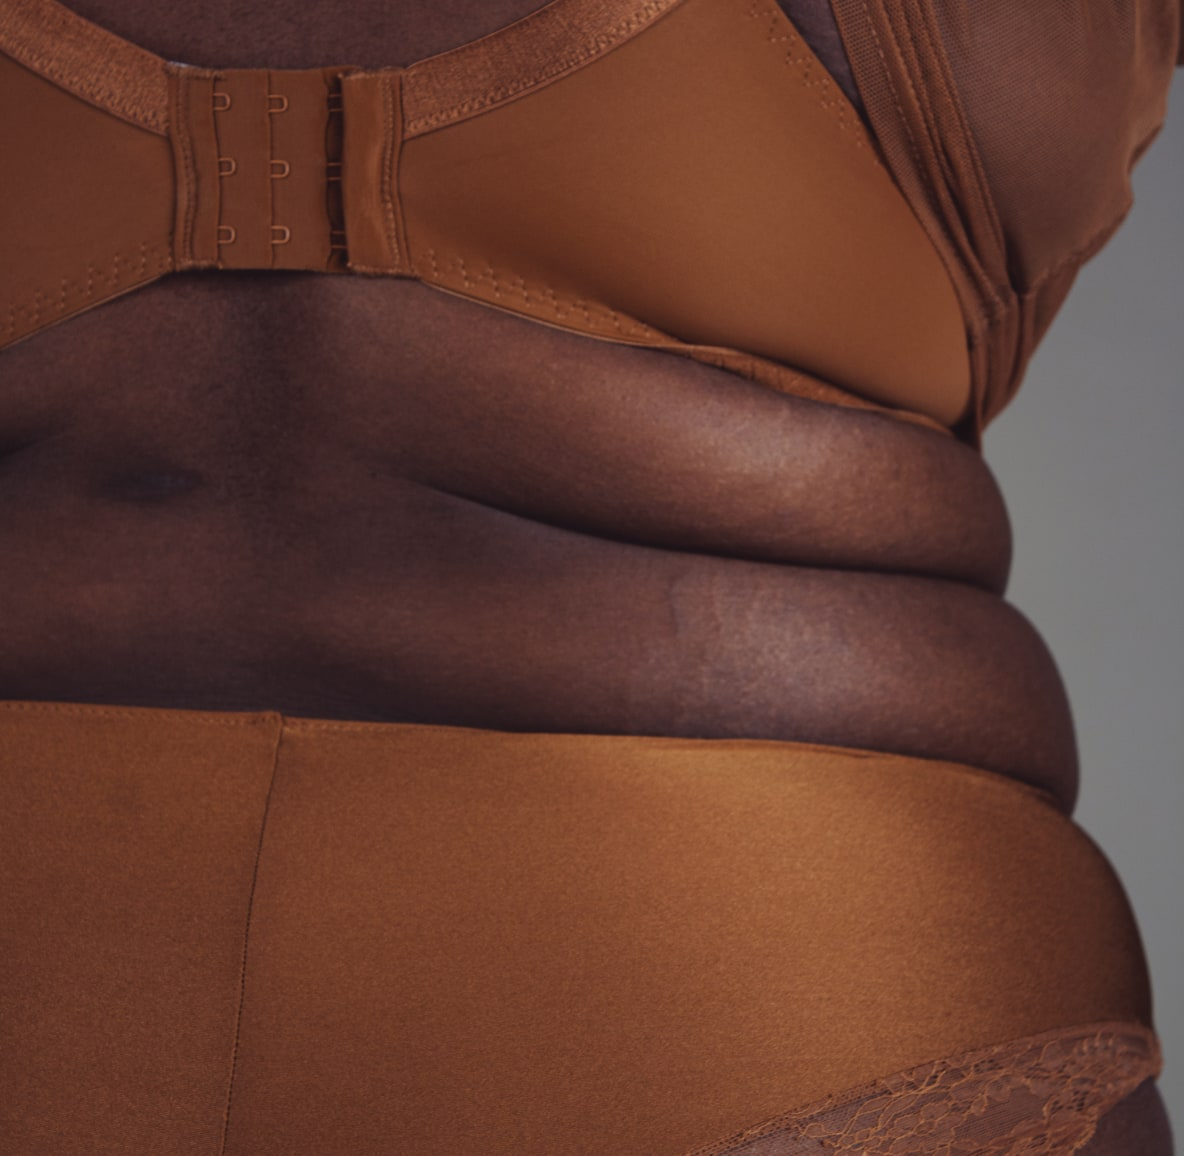 Hips and waist of a plus-size woman wearing nude-colored bra and underwear